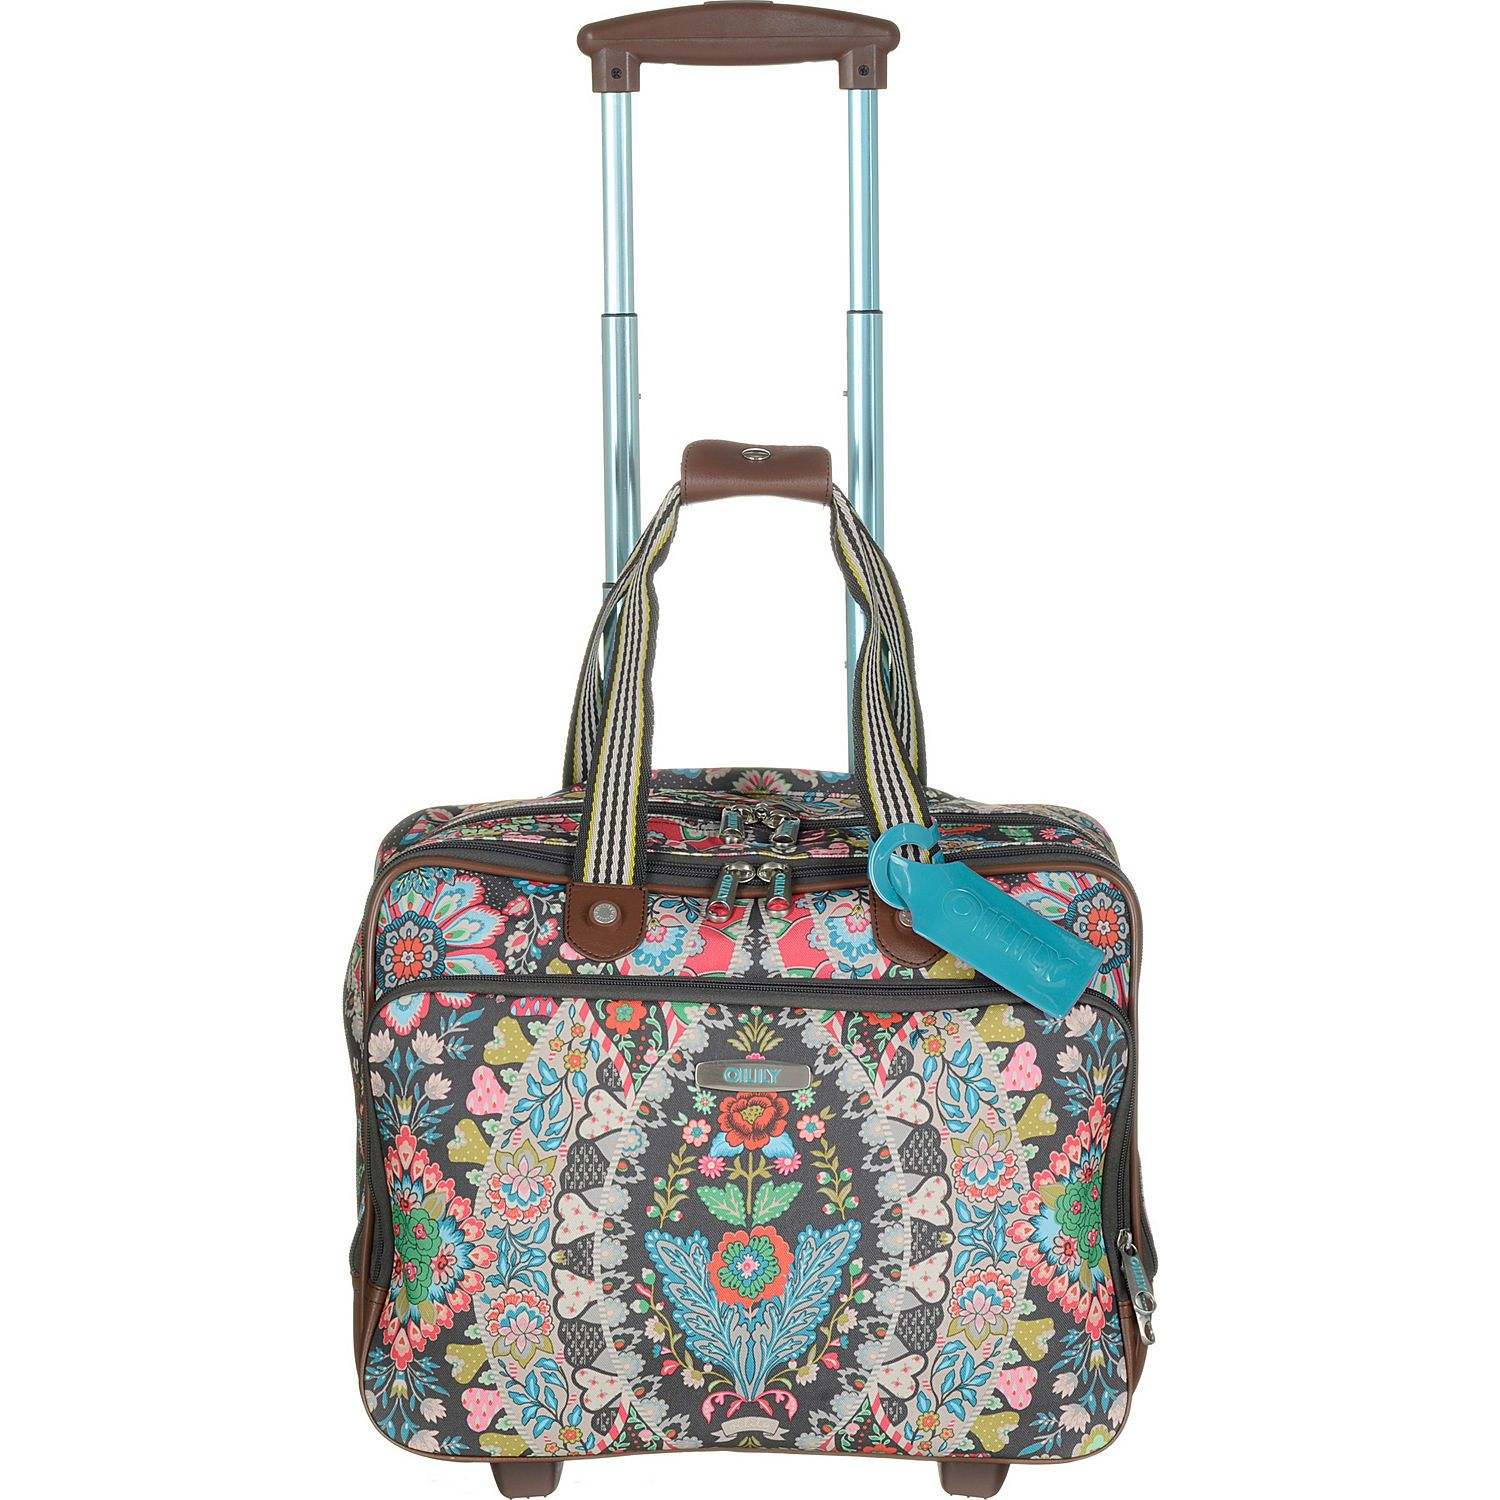 0f86dc52ff4e Buy the Oilily Travel Office Bag On Wheels at eBags - Add color and  personal style to your travel routine with this allover print roller bag  from Oilily.